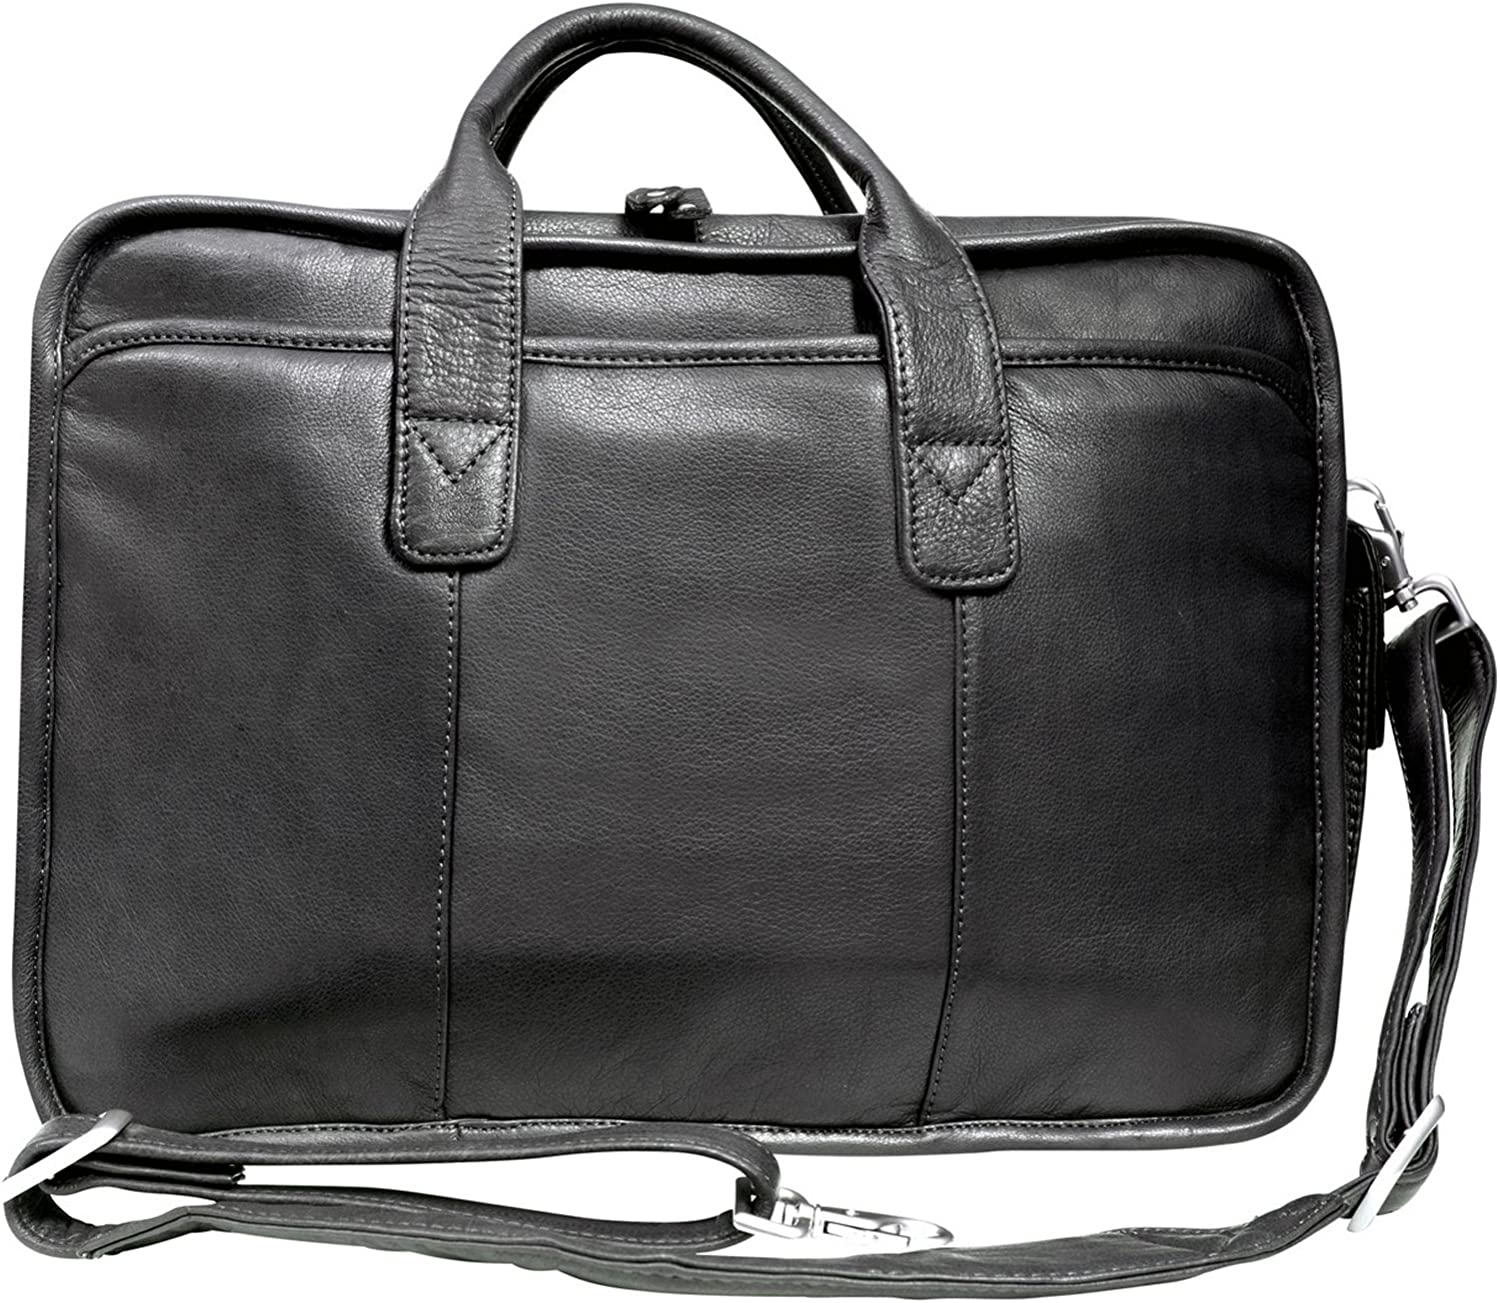 Inc Glacier Canyon Slim Leather Briefcase Canyon Outback Leather Goods Great for Men and Women Laptop Sleeve